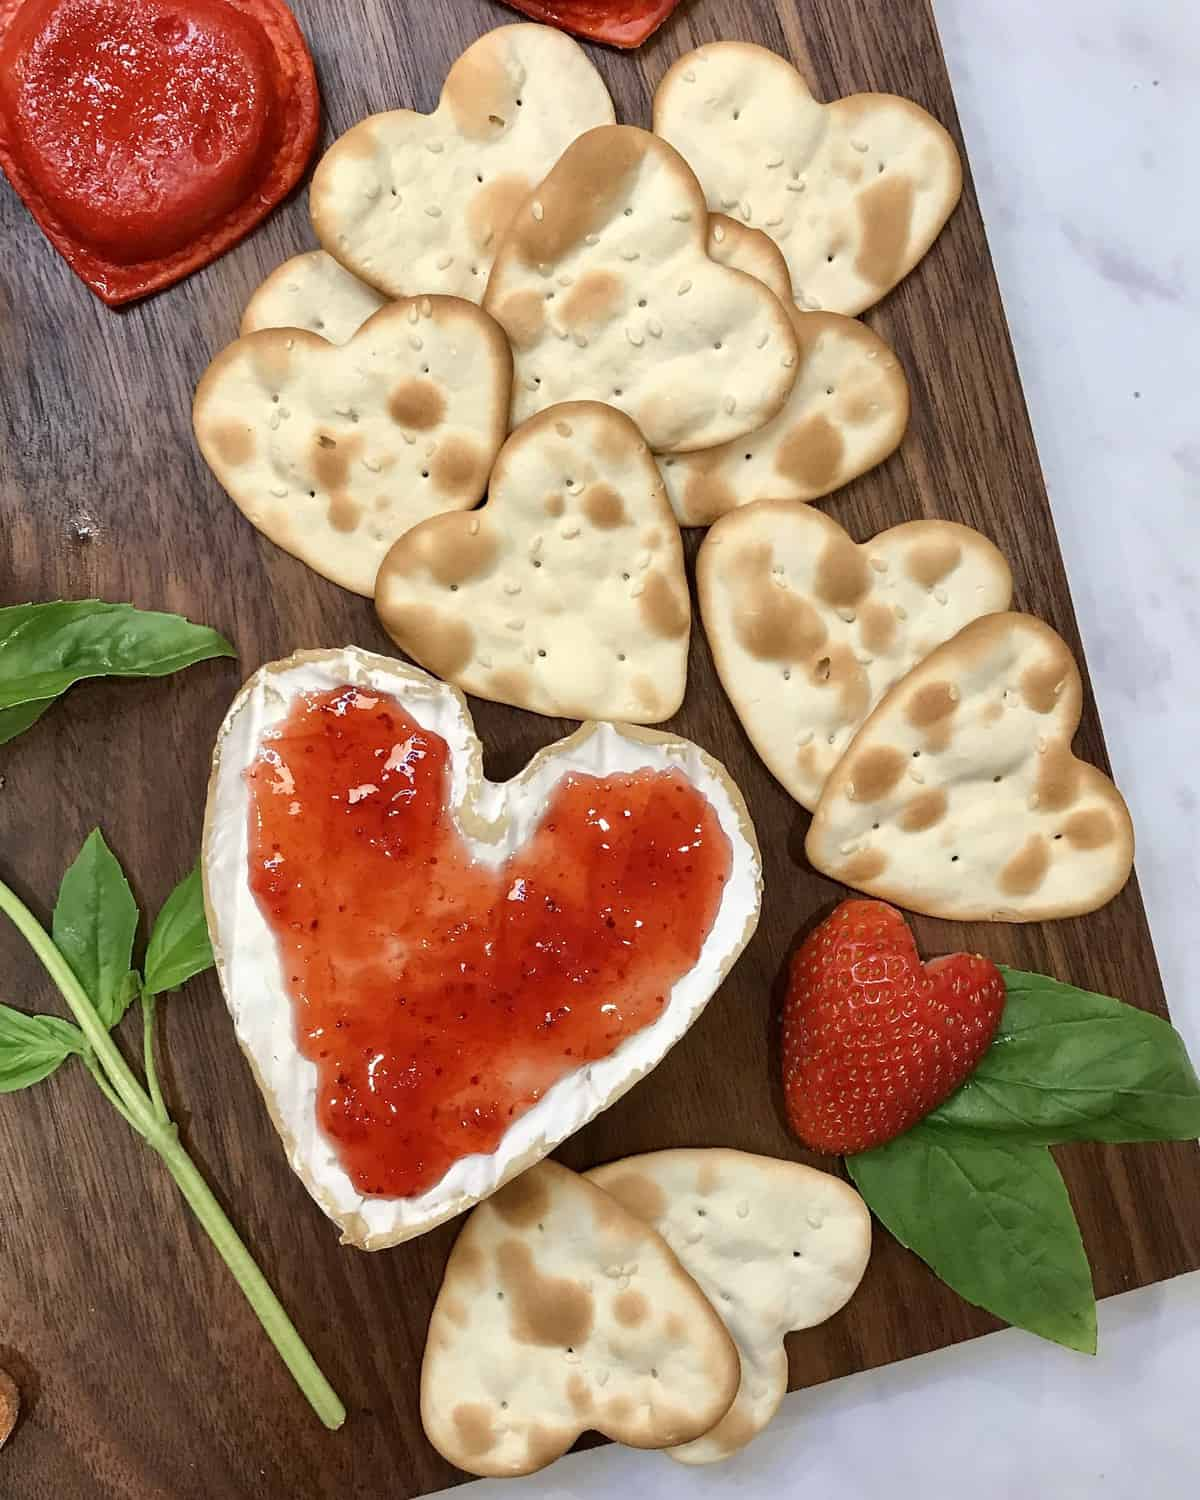 Italian-Themed Valentine's Day Dinner Board by The BakerMama